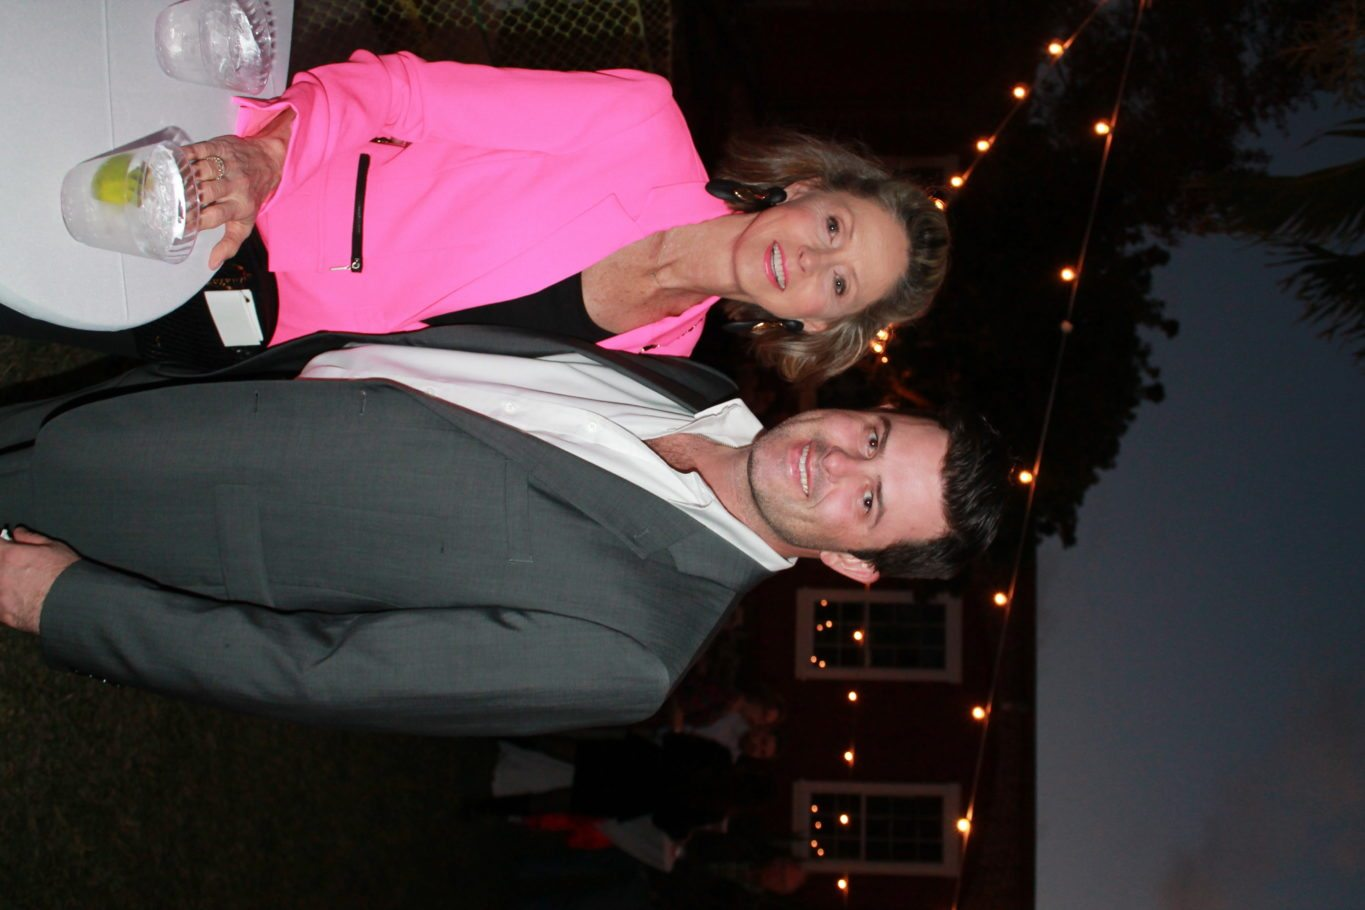 Billy Spottswood knows how to pick the perfect date … bring mom! Seen here with the beautiful Andrea Spottswood.